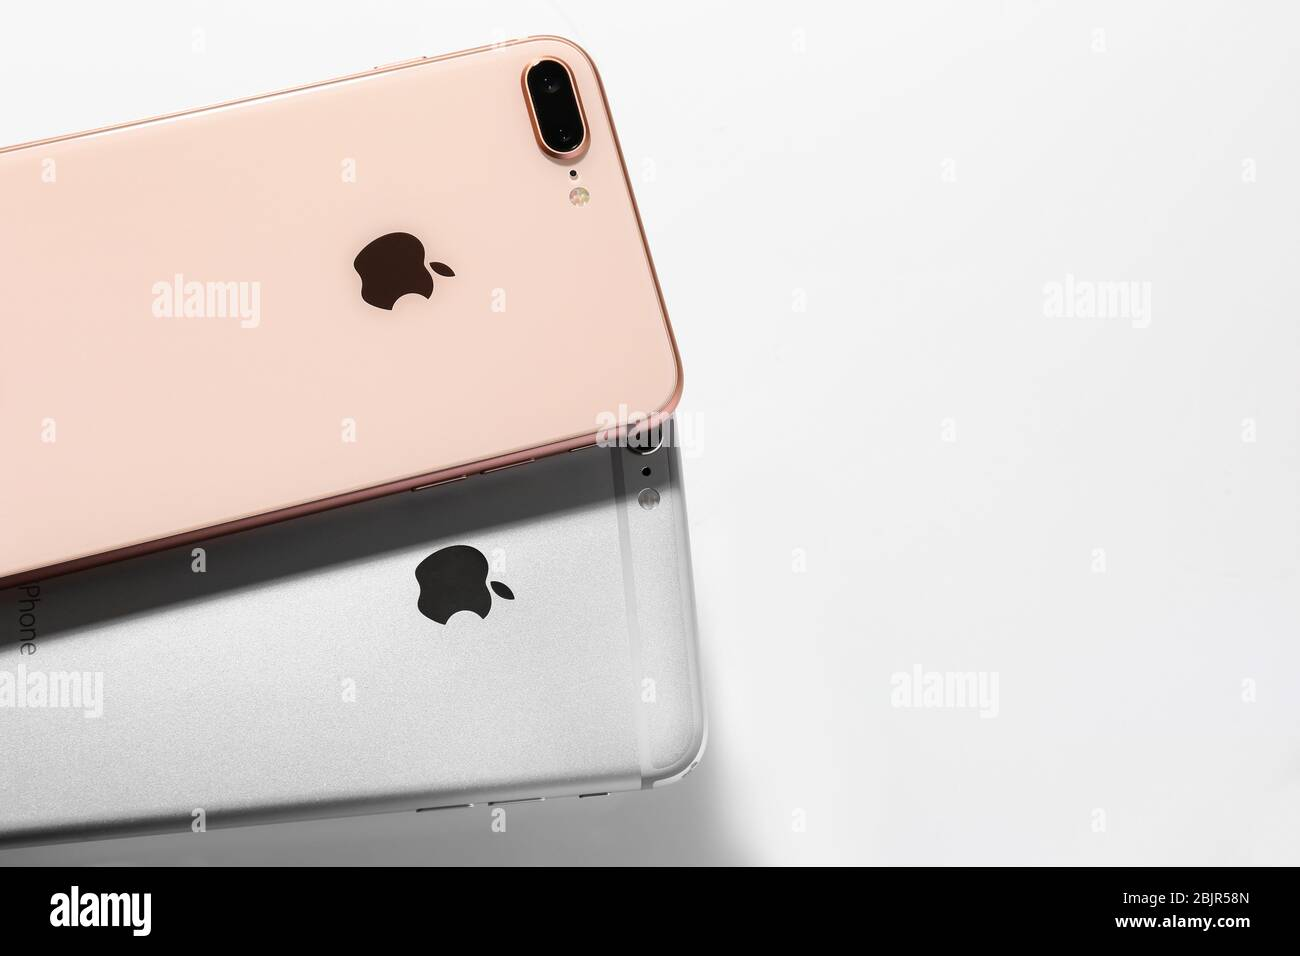 Iphone 6s Plus High Resolution Stock Photography And Images Alamy